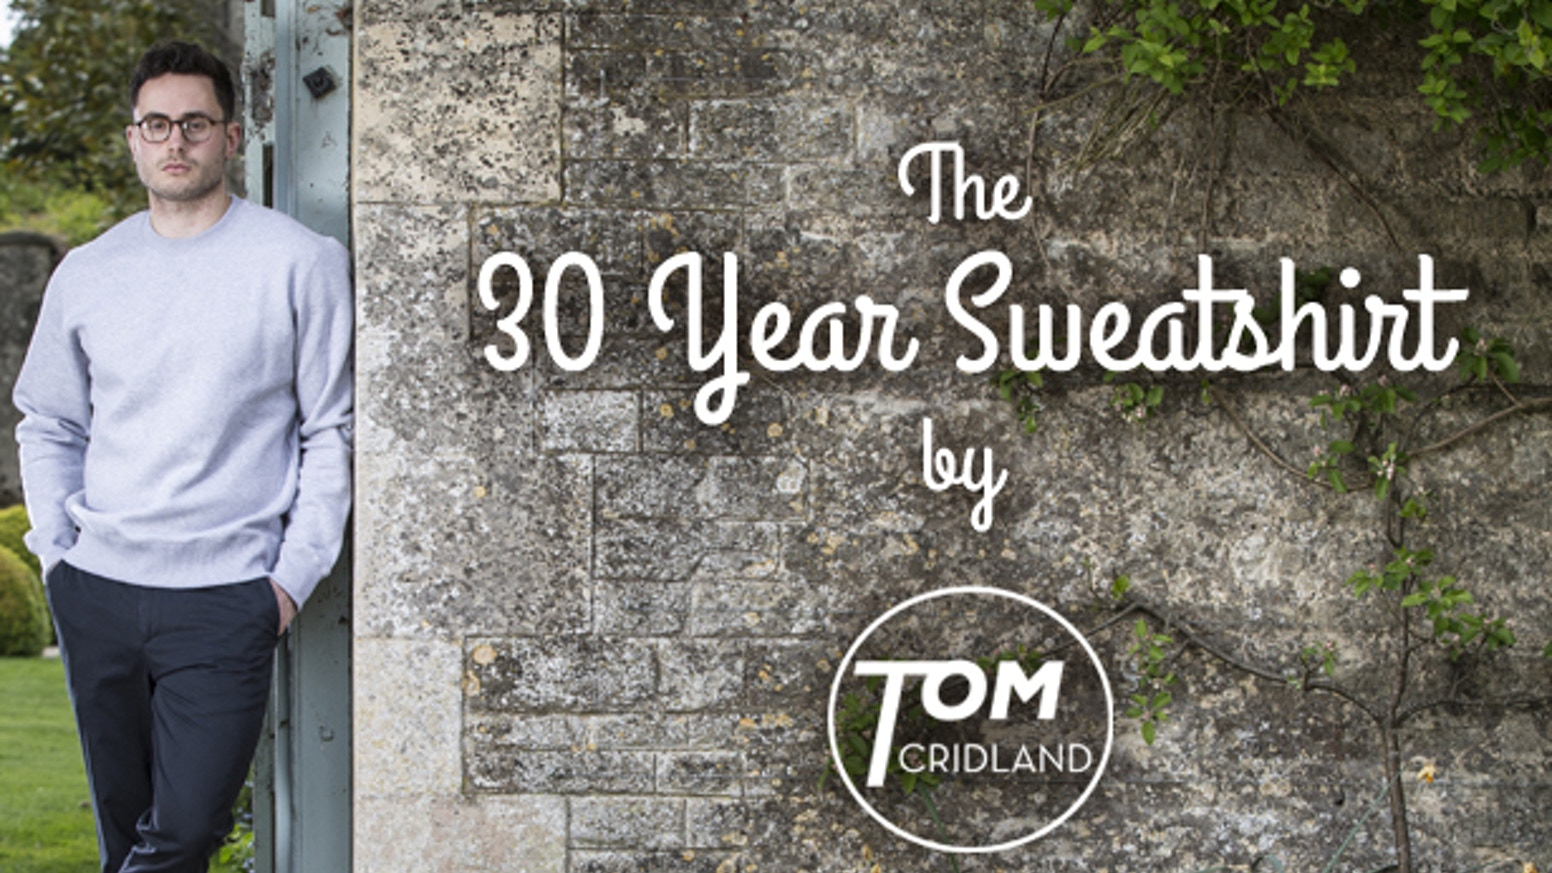 A groundbreaking sustainable fashion project. Premium Loopback Sweatshirts, handmade to last a lifetime and backed with a 30 Year Guarantee.